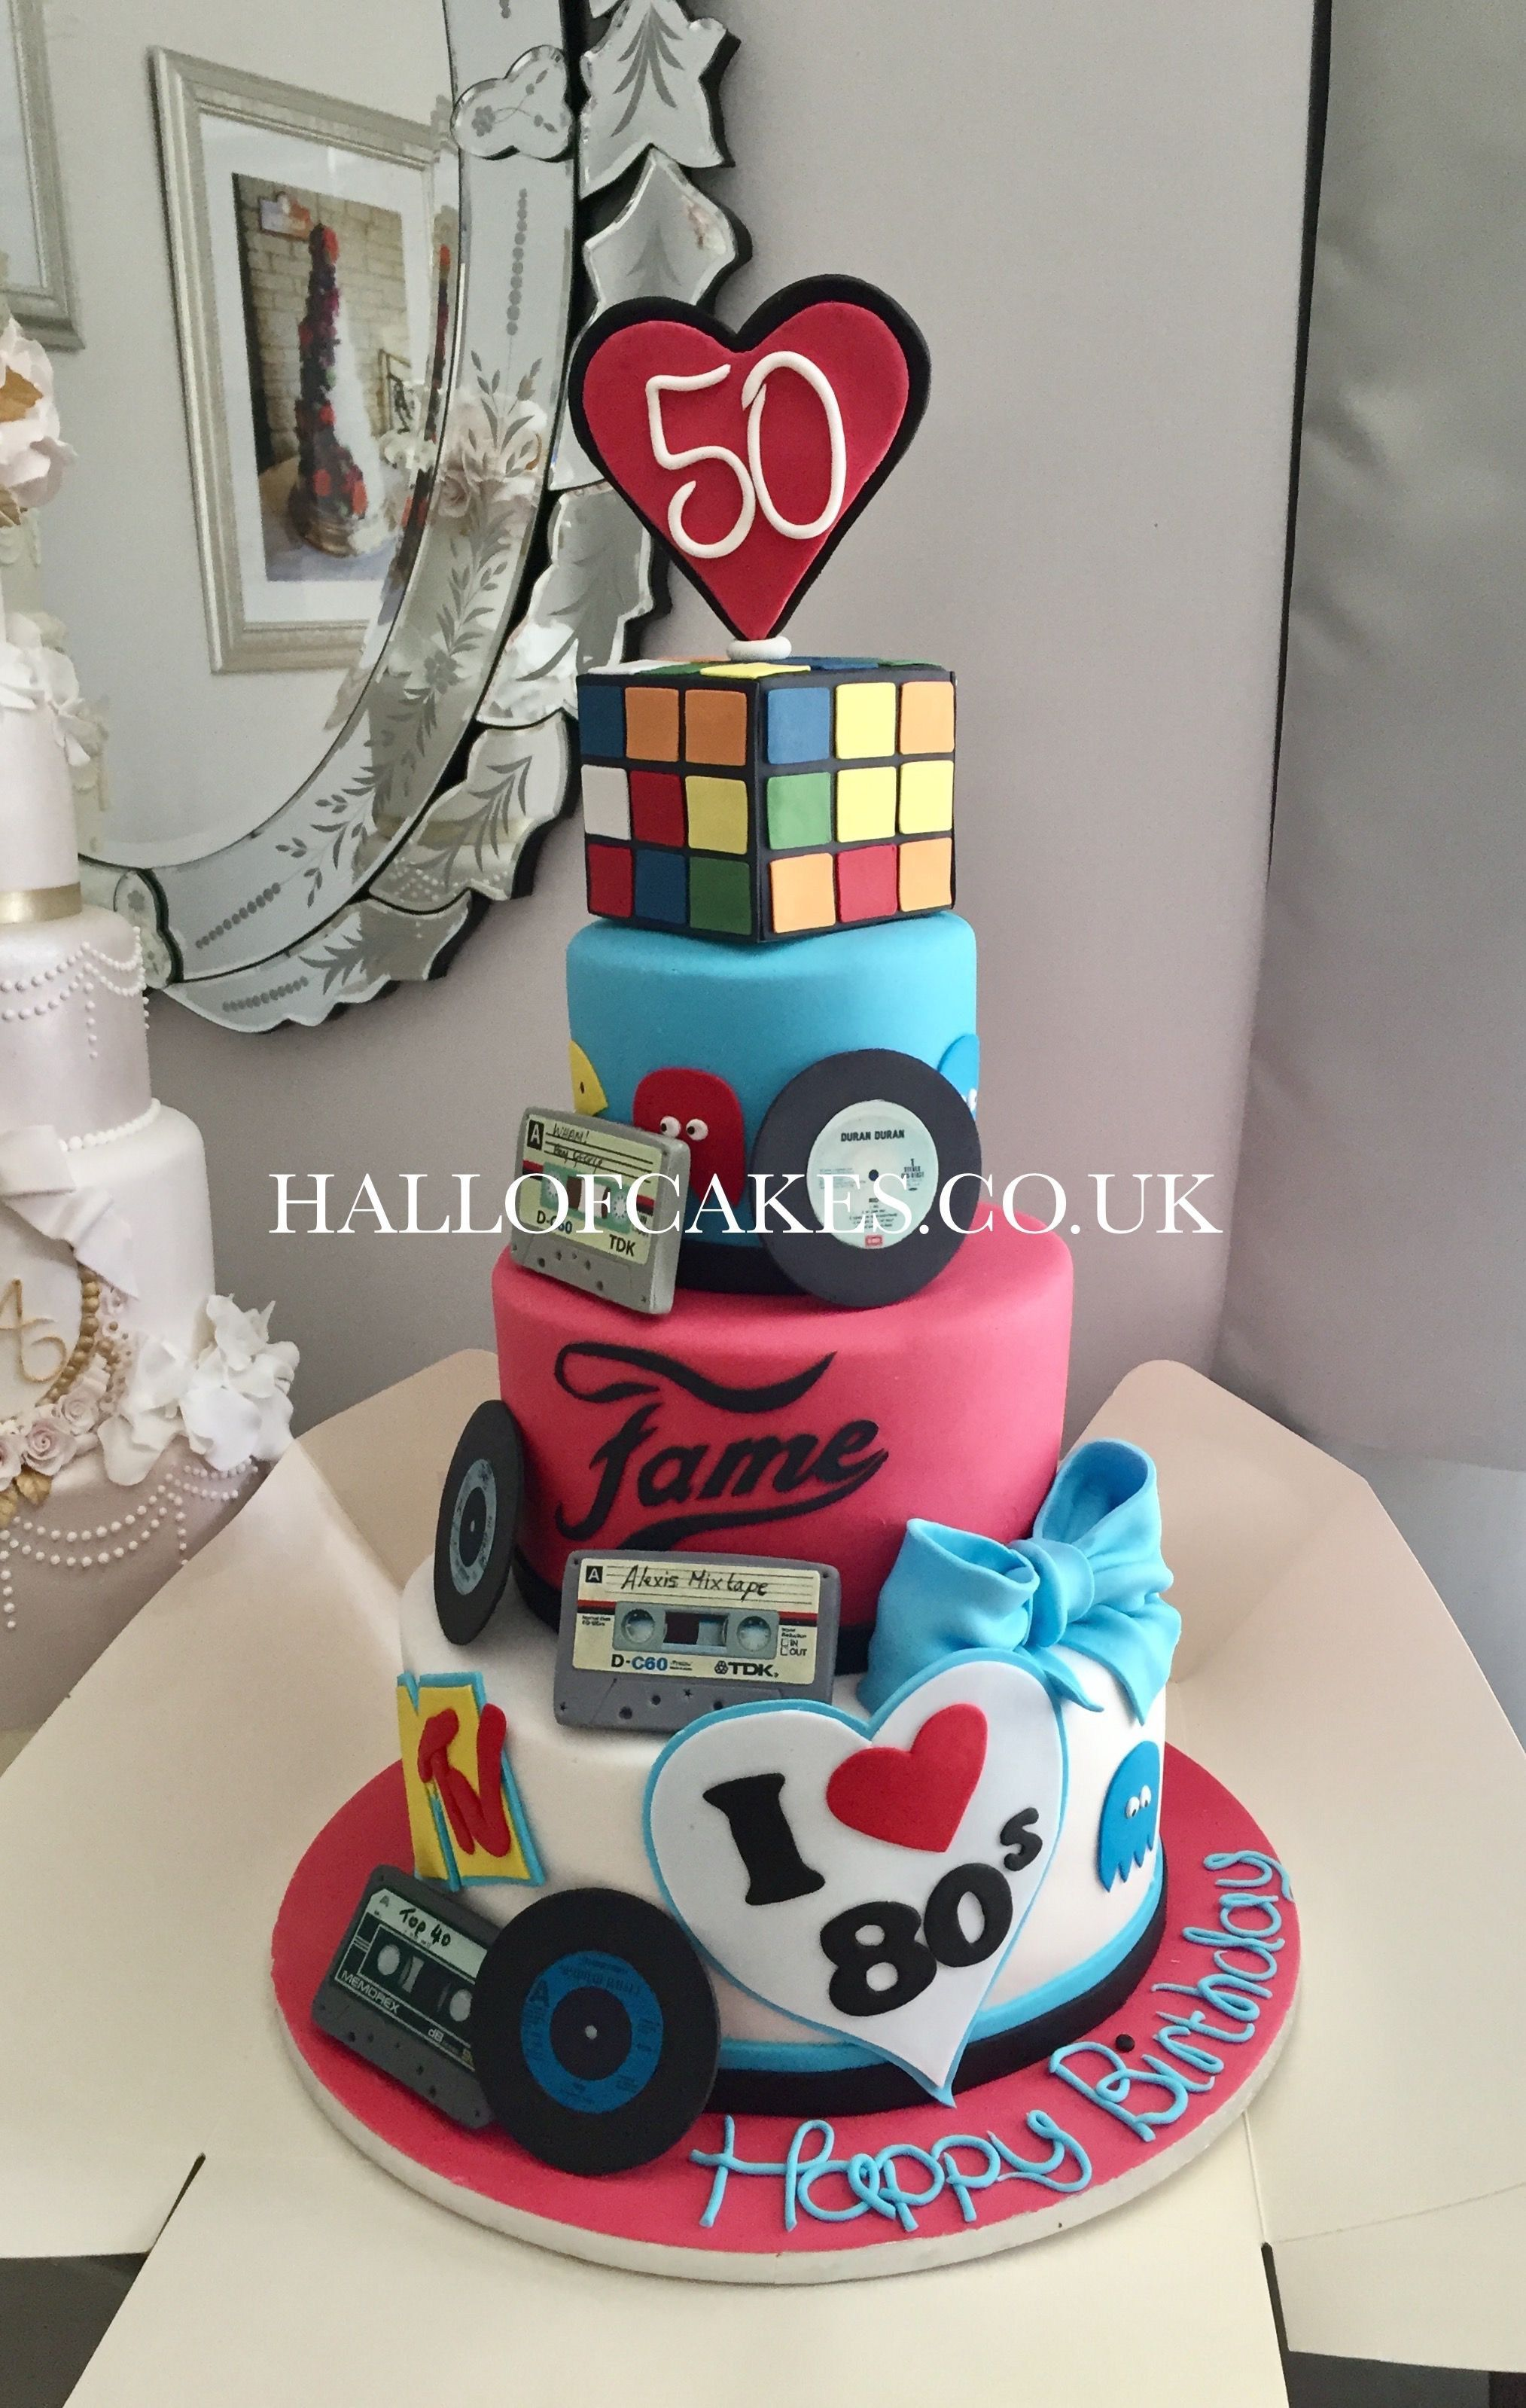 25 Elegant Picture Of Themed Birthday Cakes Em 2020 Doces Anos